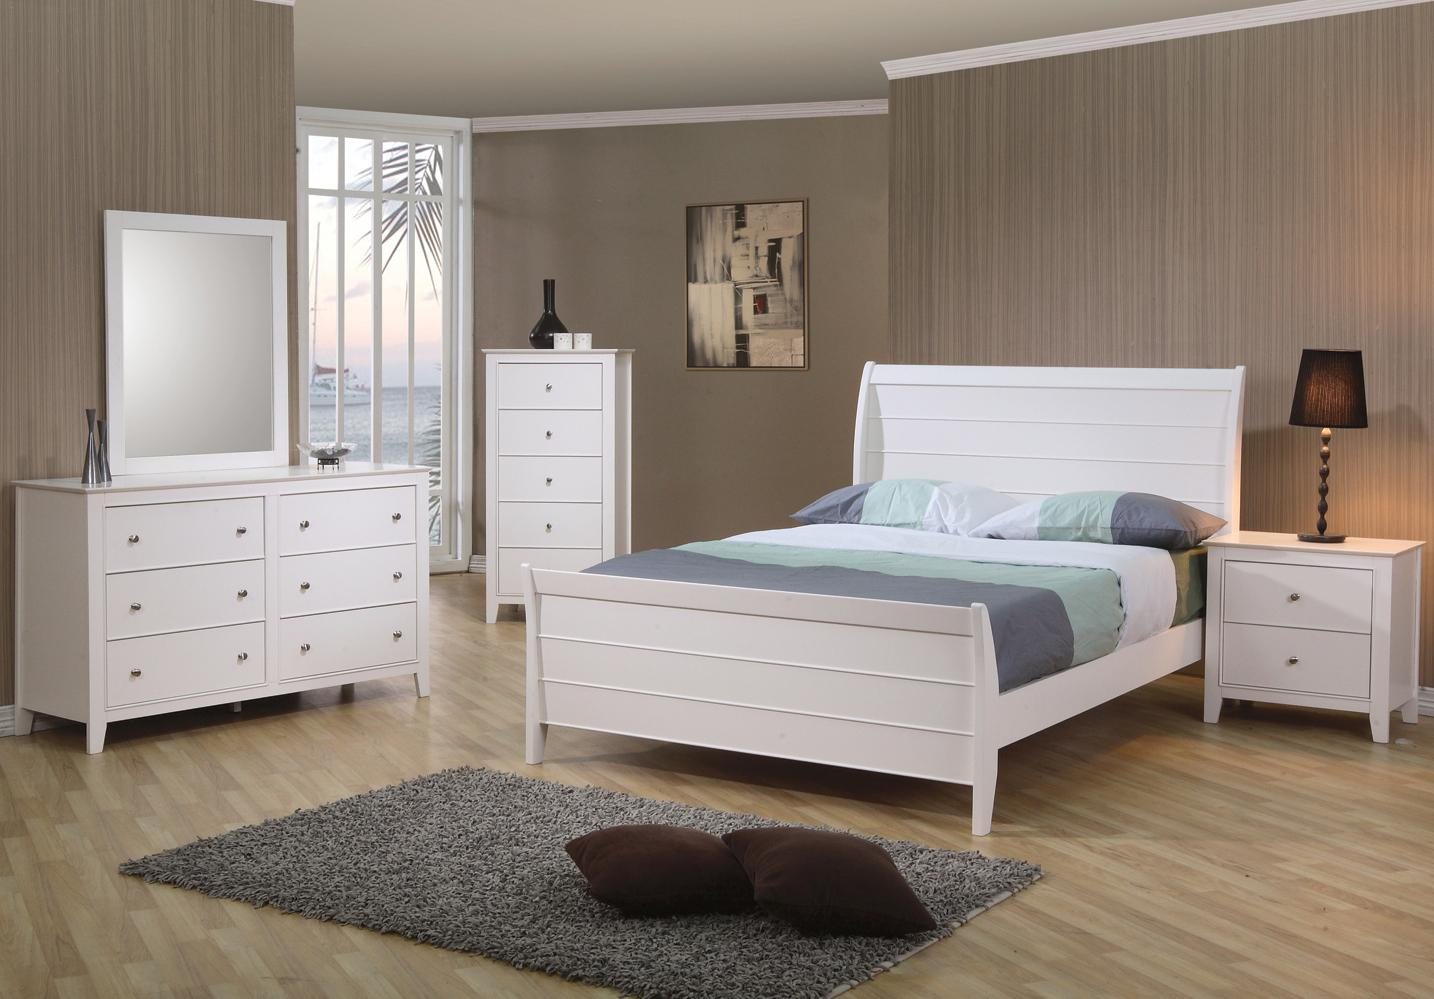 Coaster furniture selena bedroom set broadway furniture for White bedroom furniture